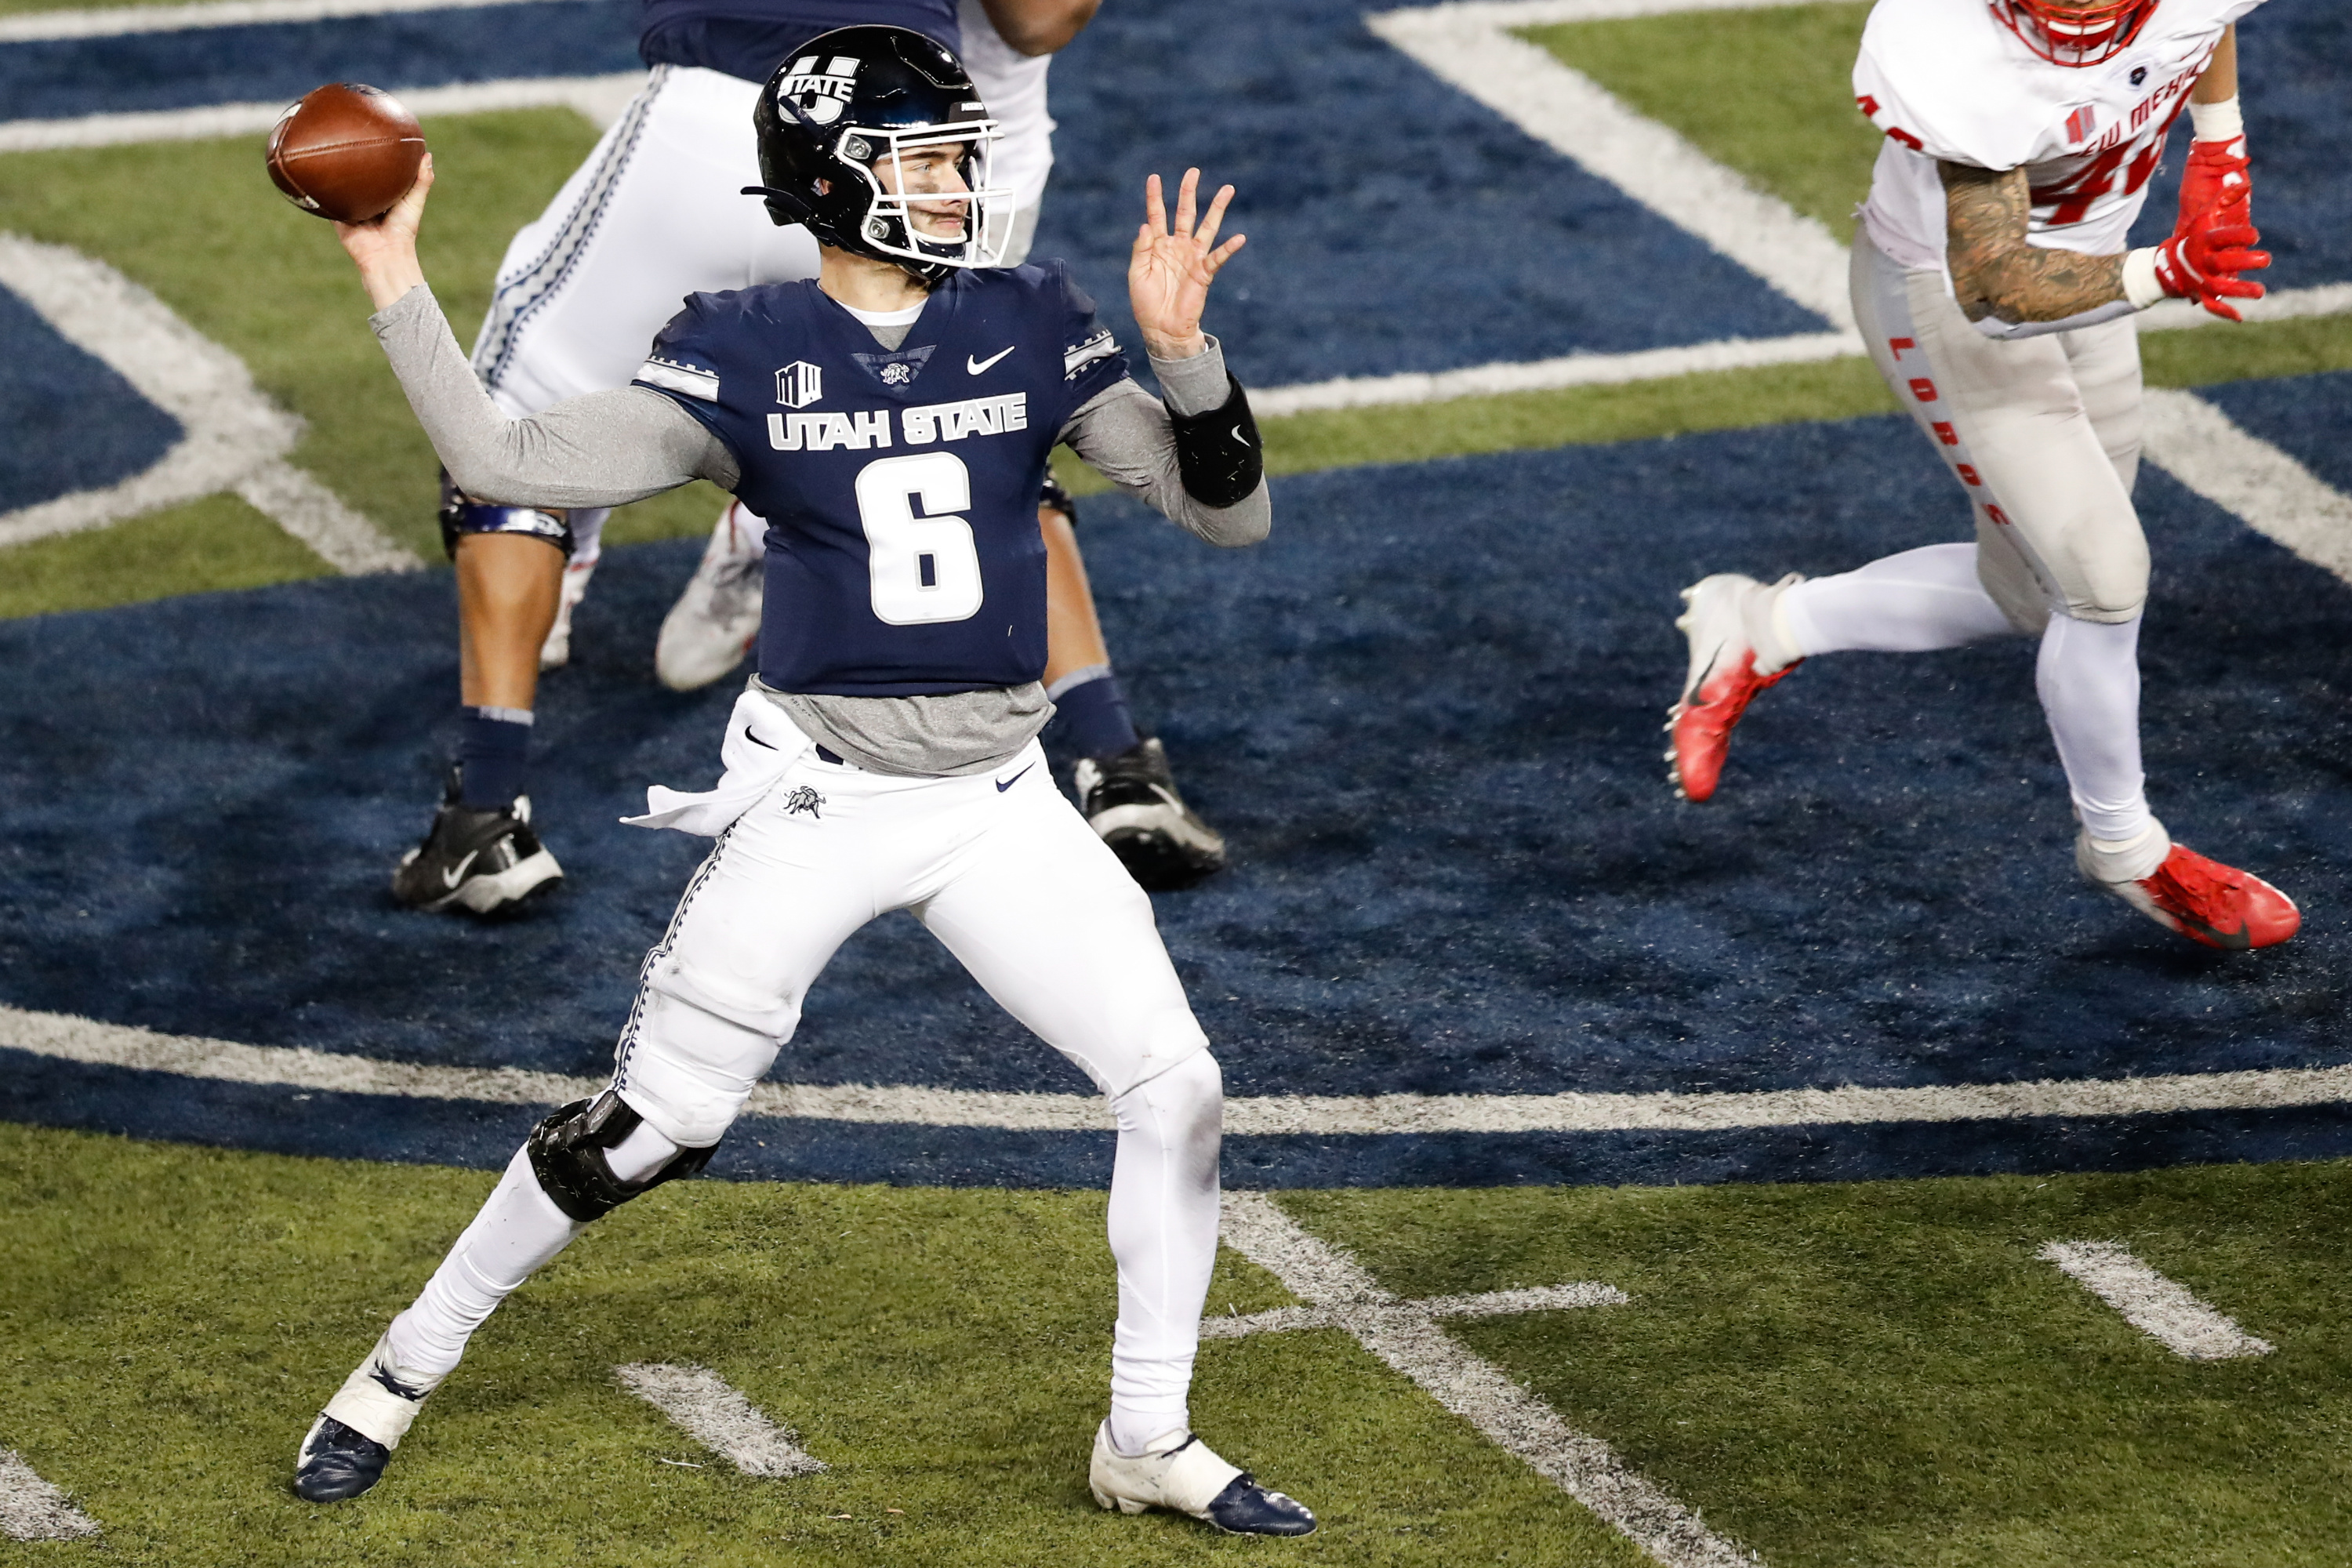 Utah State Aggies quarterback Andrew Peasley sets to pass against the New Mexico Lobos defense.